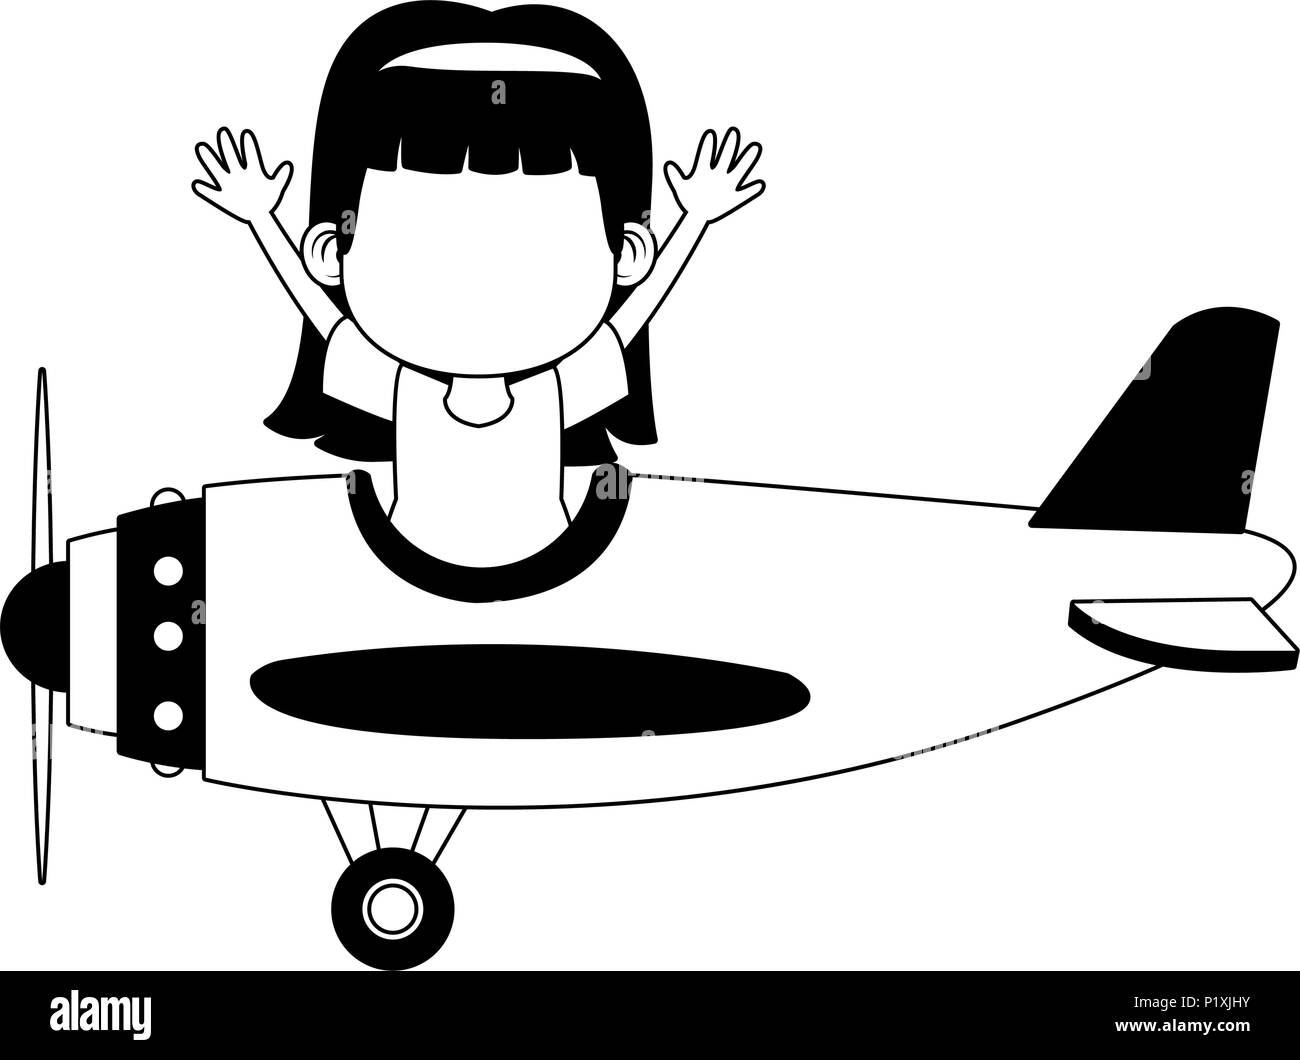 Girl flying on vintage airplane in black and white - Stock Image